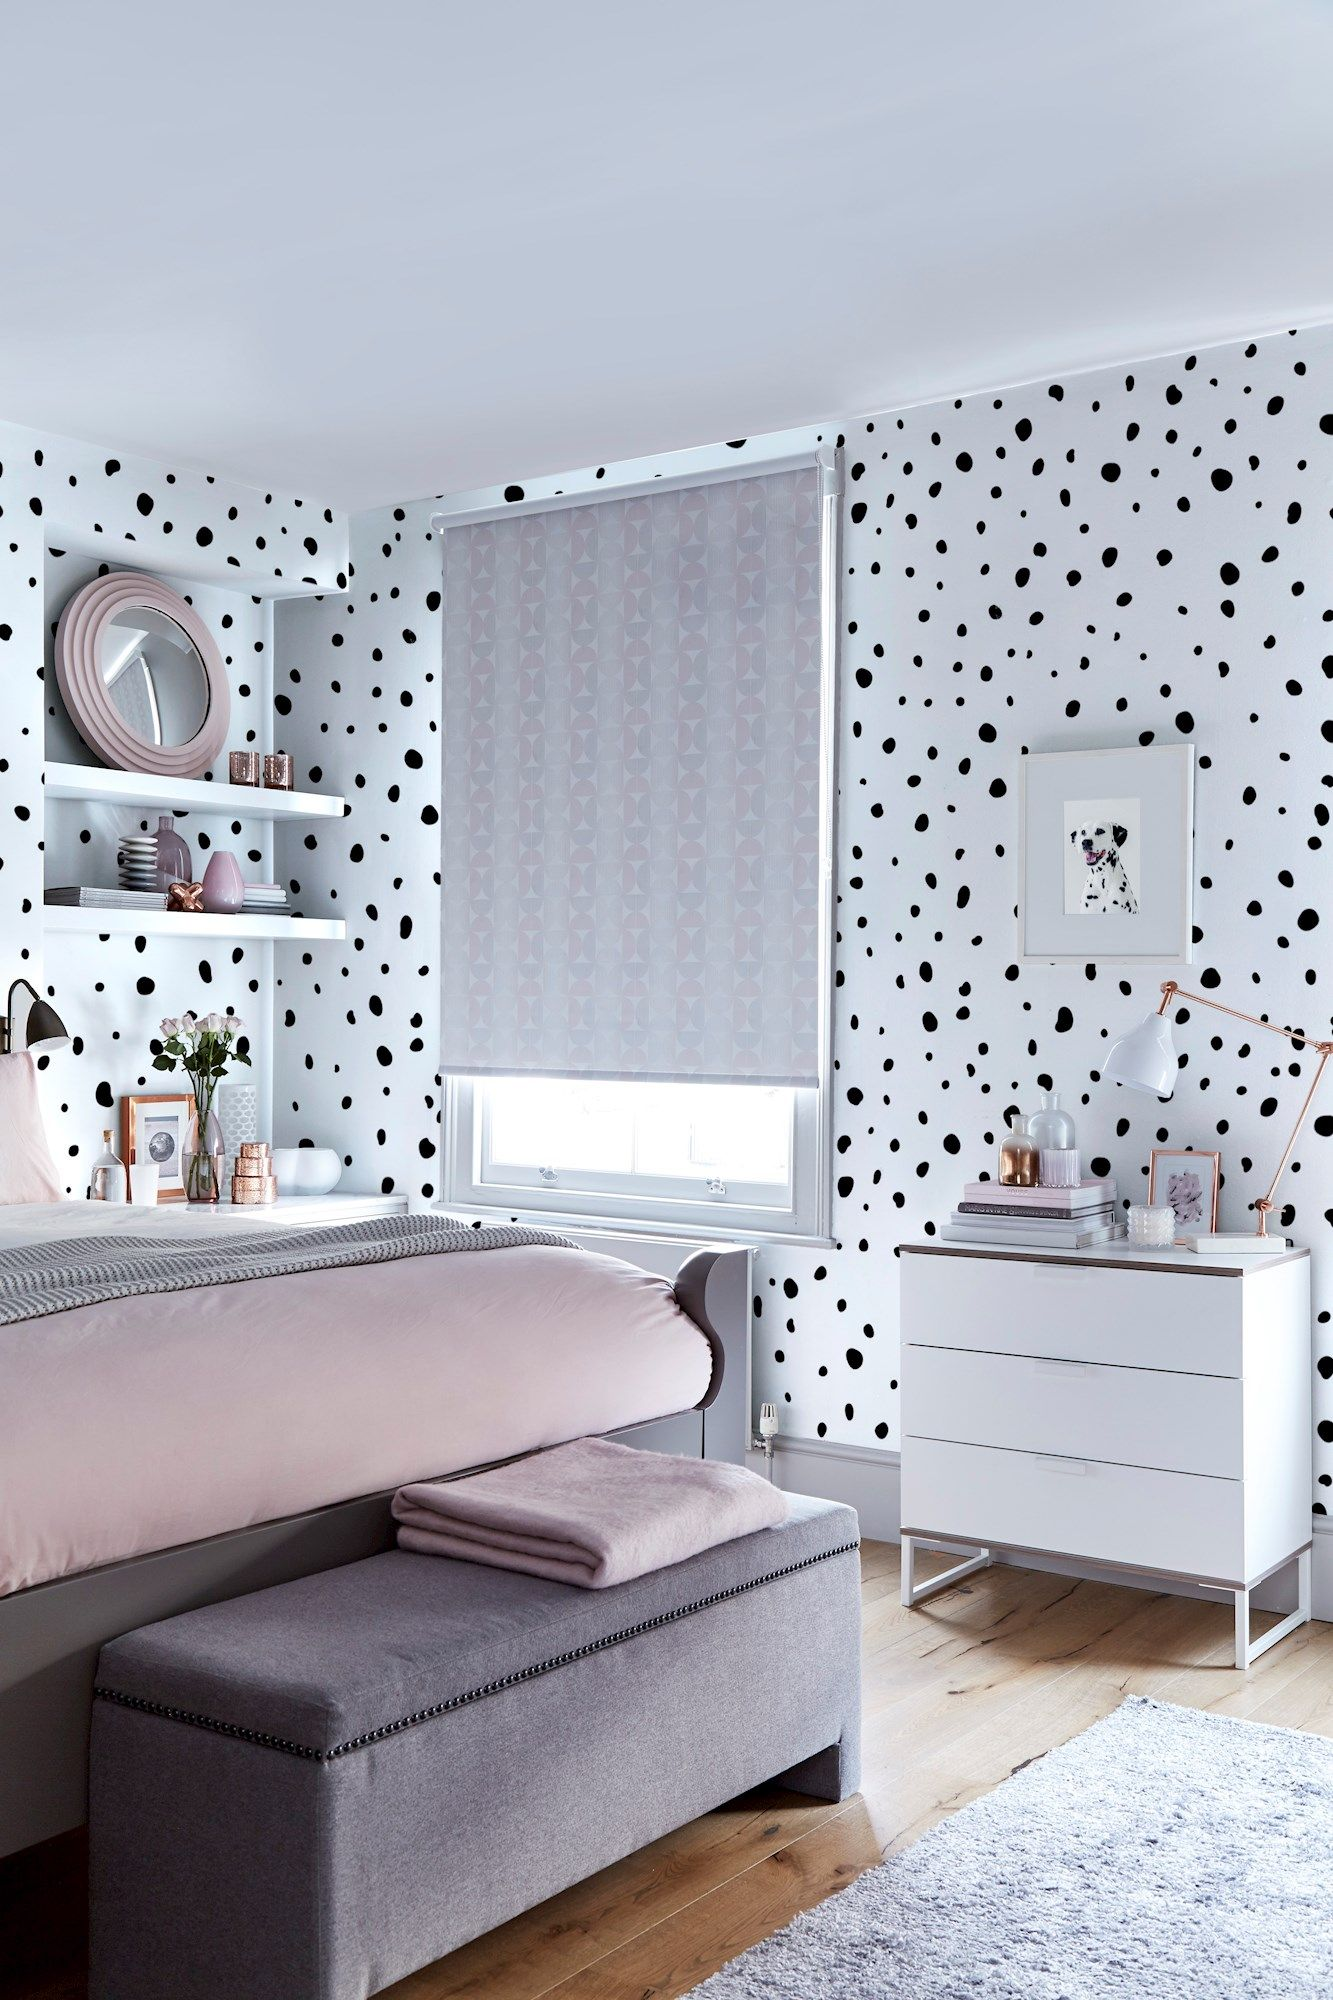 A bedroom decorated in a dalmatian style